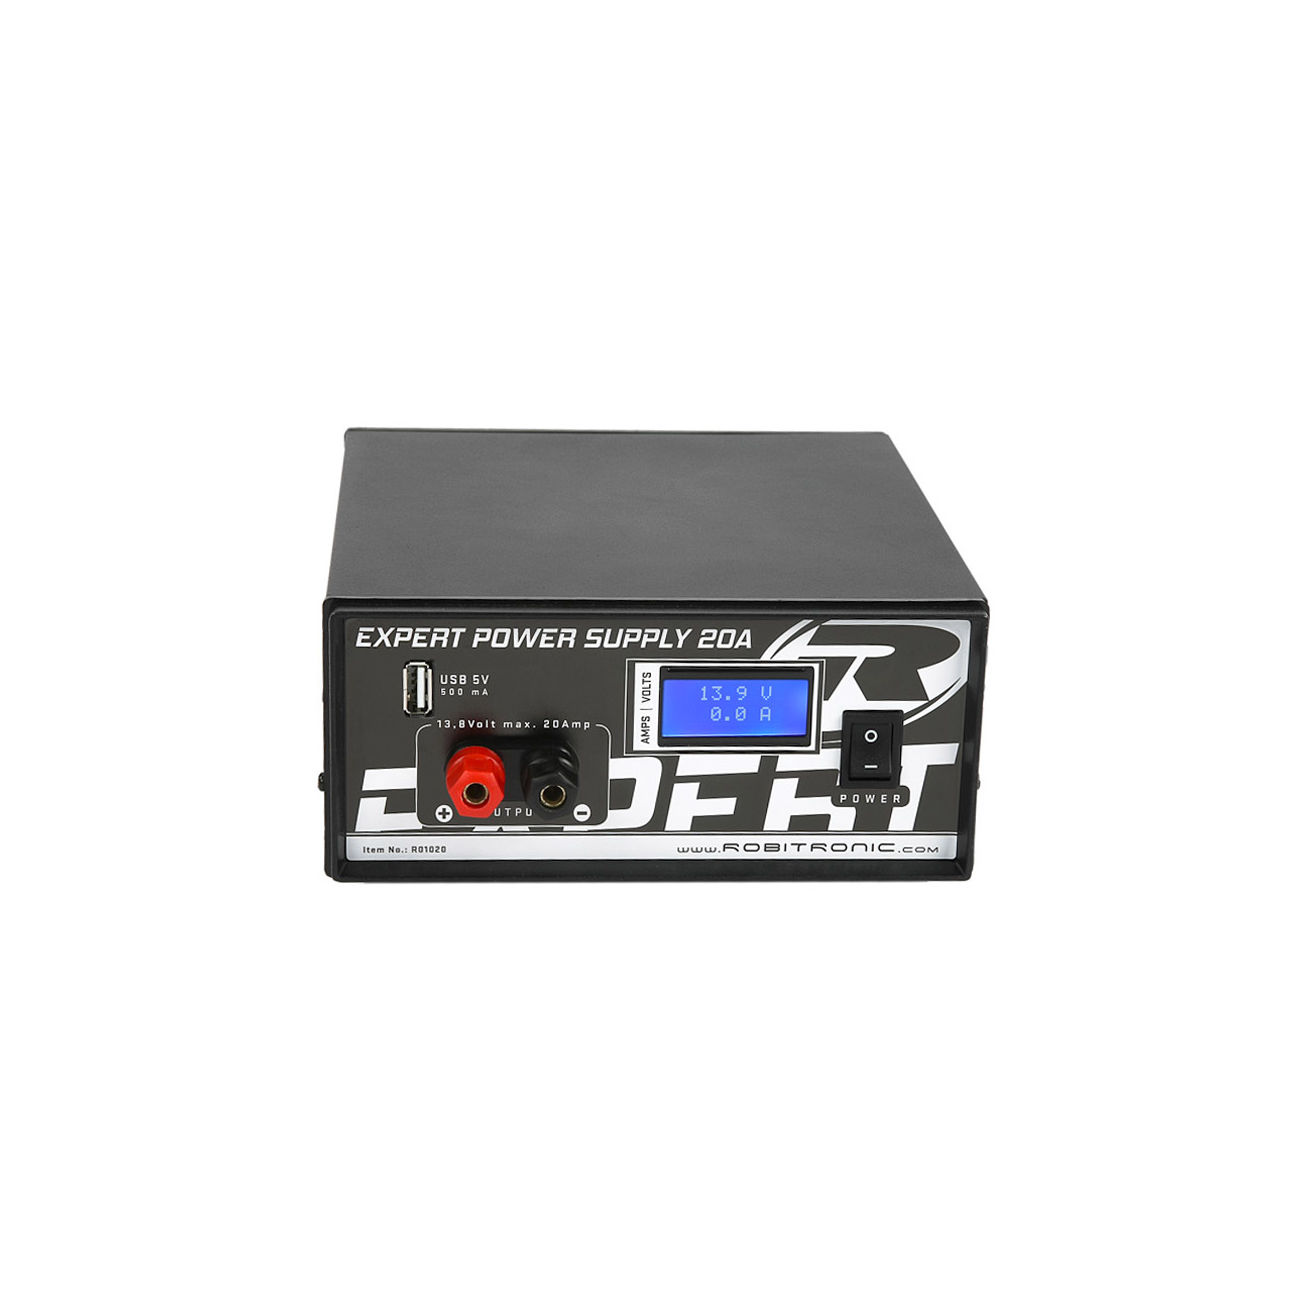 Robitronic Netzteil Expert Power Supply 13,8 Volt / 20 Ampere R01020 ...